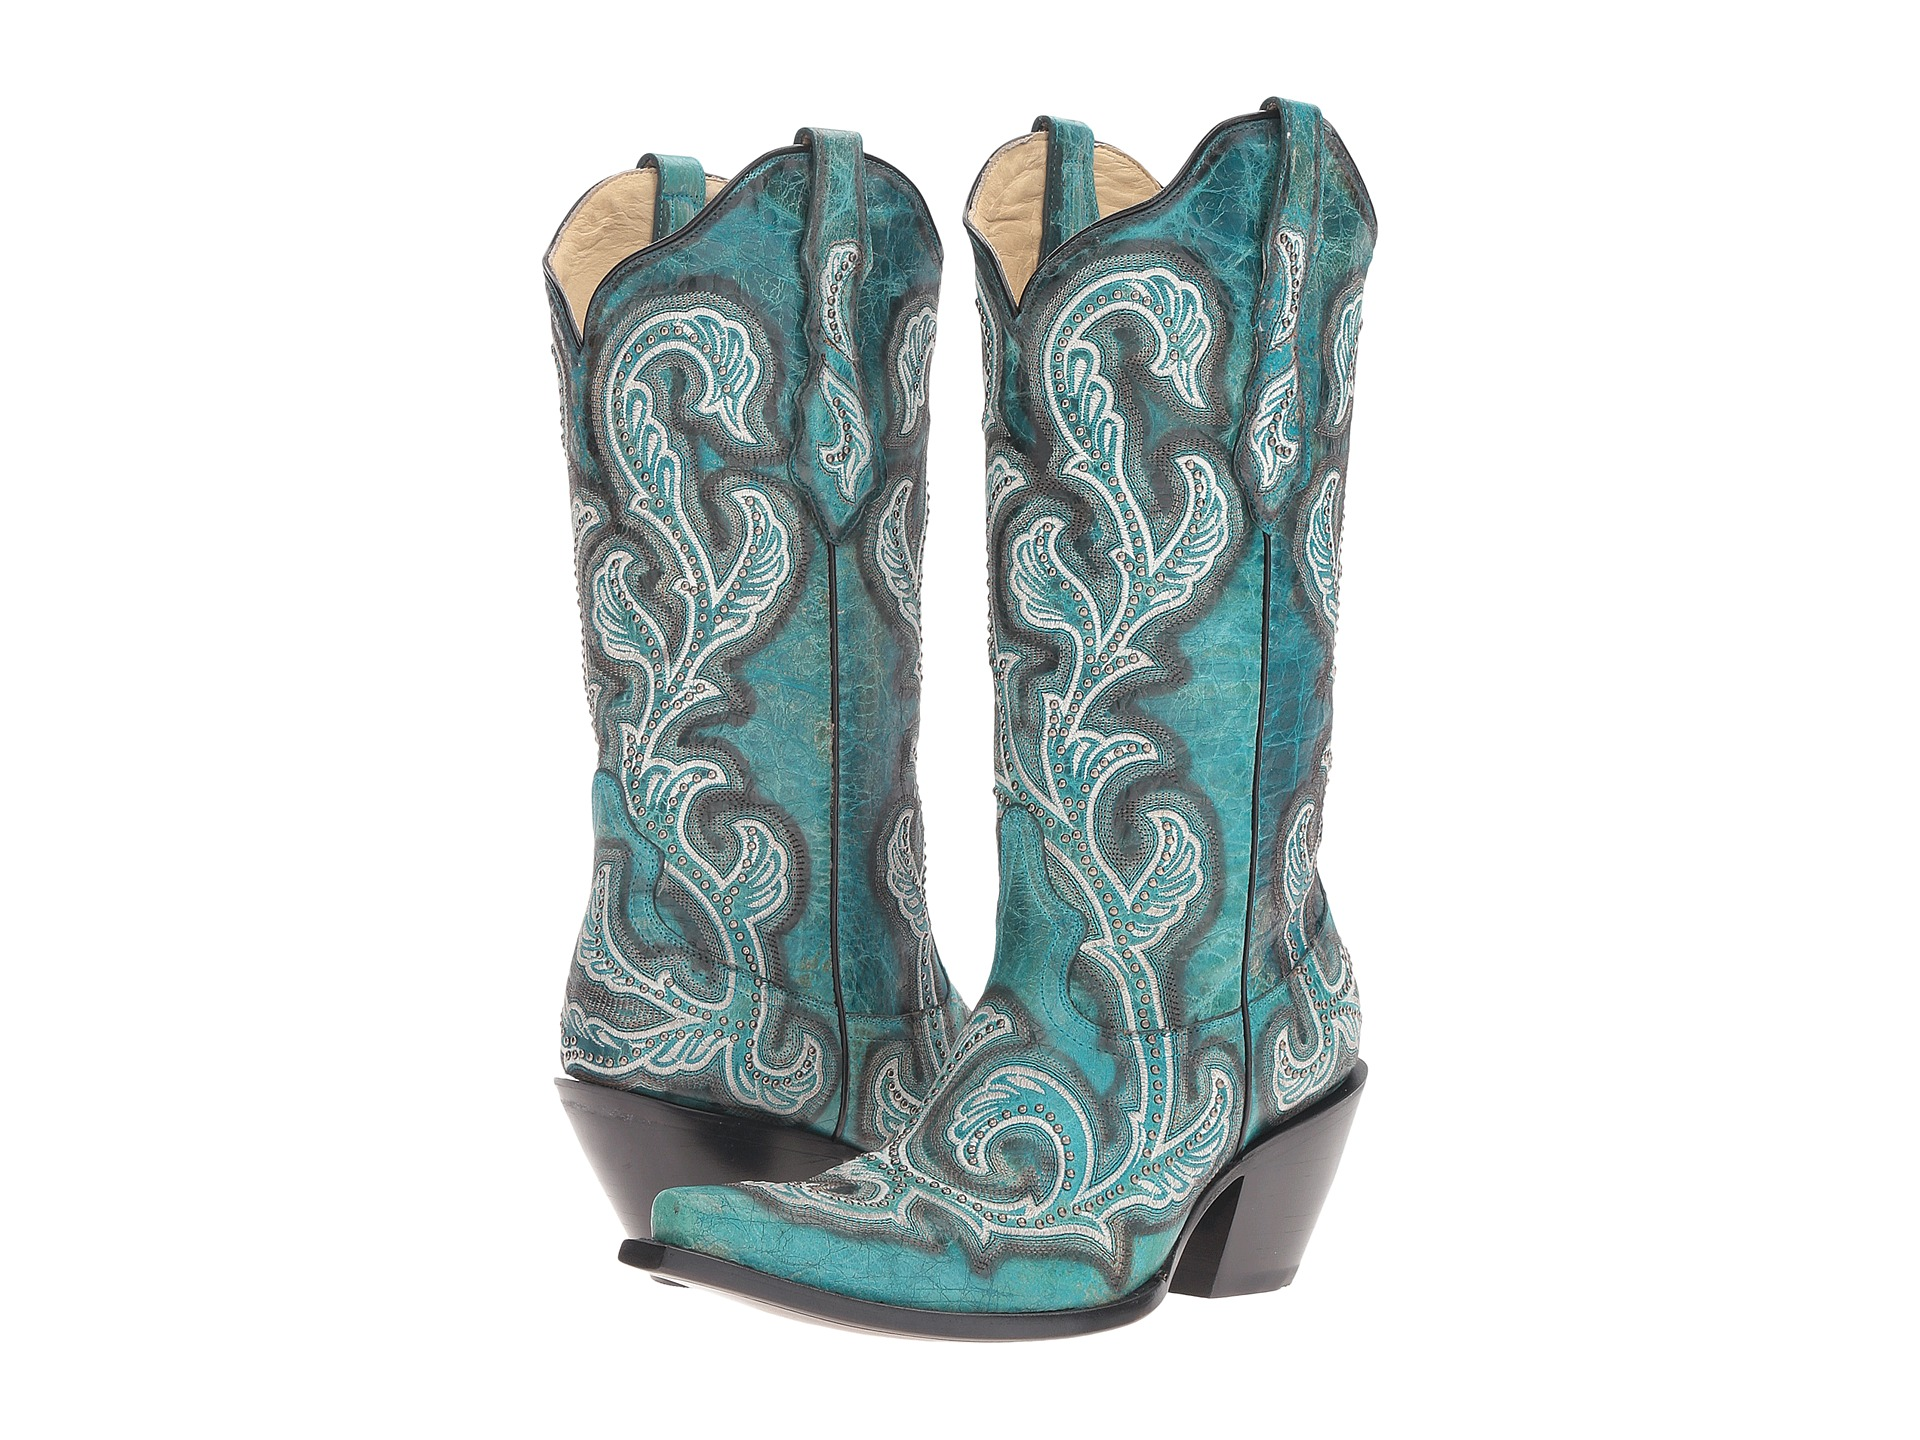 Boots, Cowboy Boots, Blue, Women | Shipped Free at Zappos